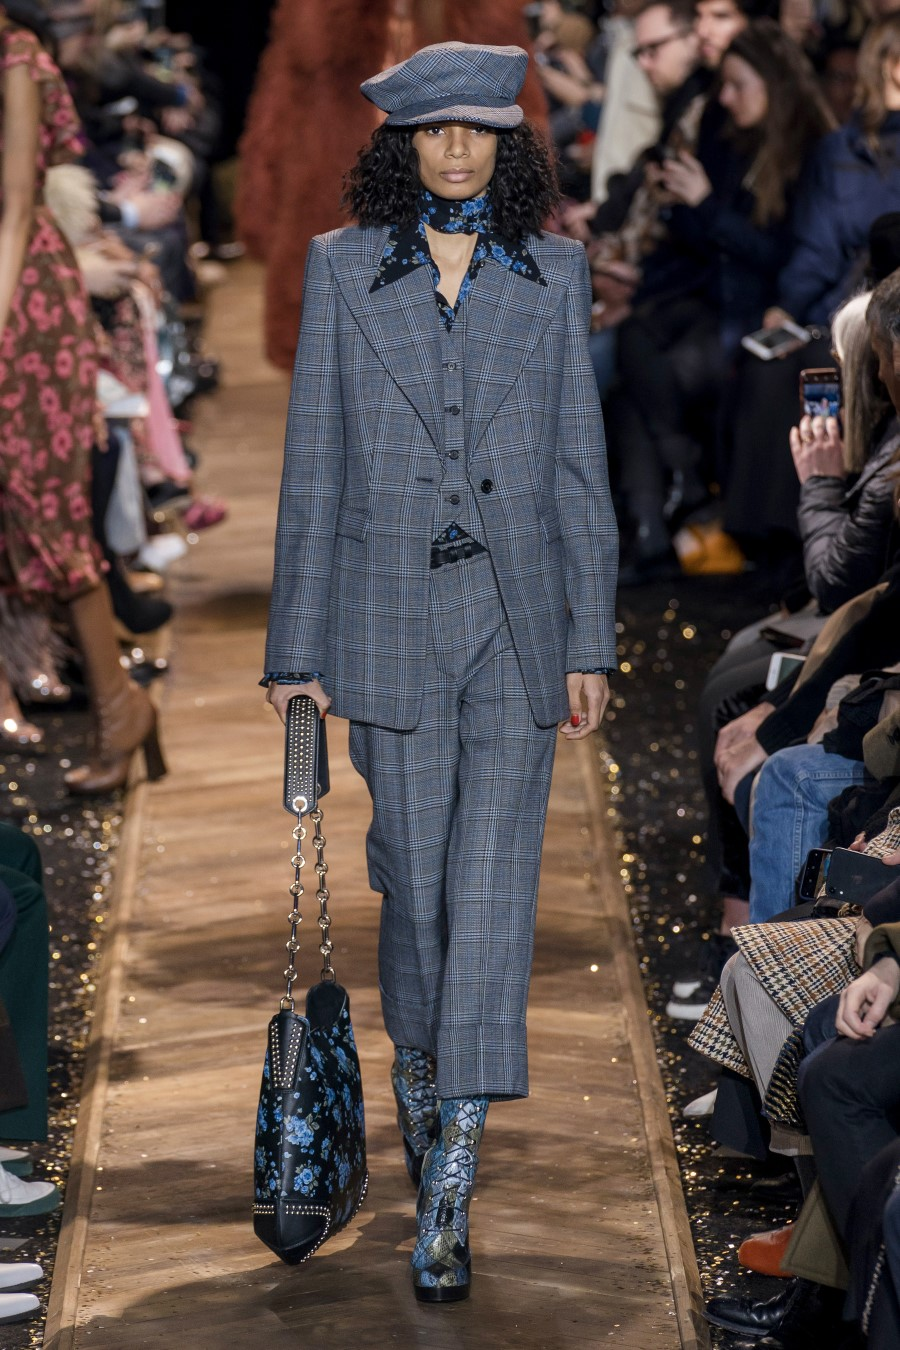 Michael Kors Collection Fall Winter 2019 - New York Fashion Week